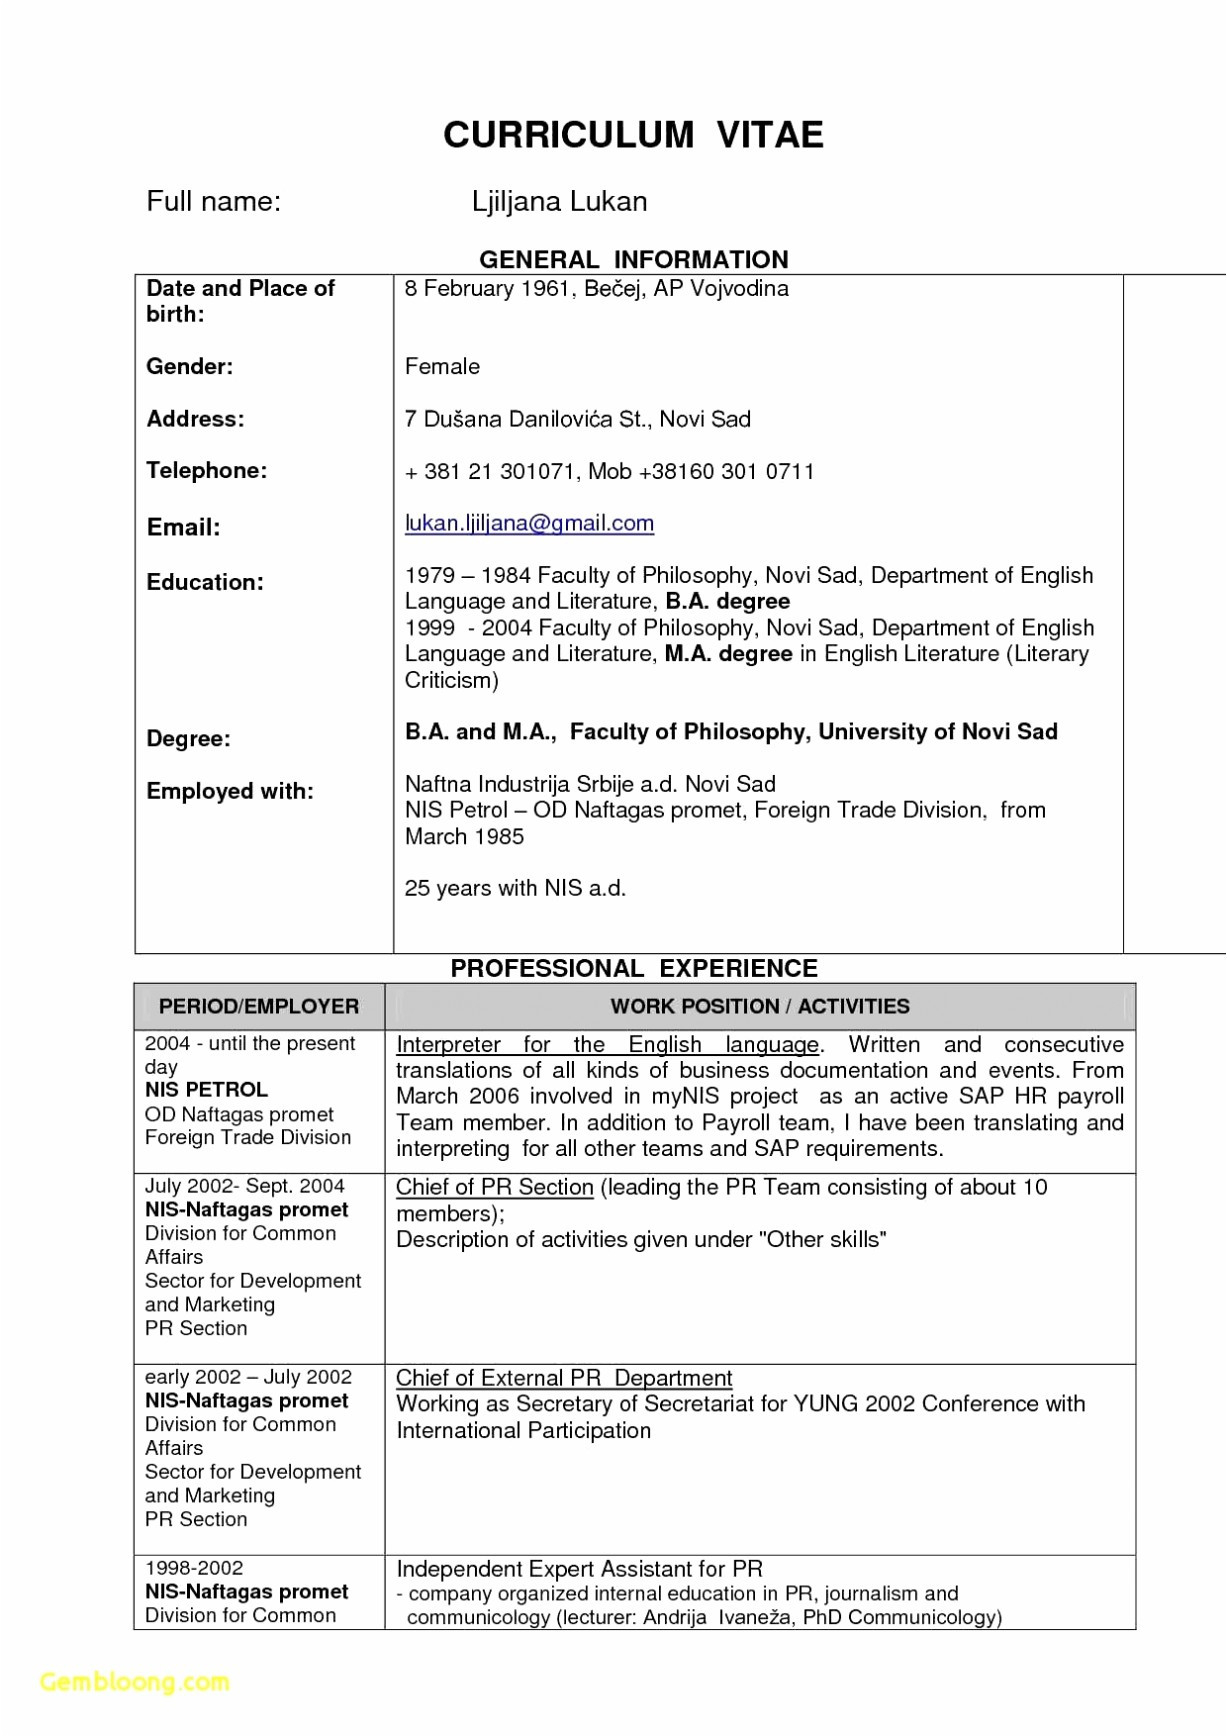 Resume to Work - Actor Resume Template Save Work Objective for Resume New Actor